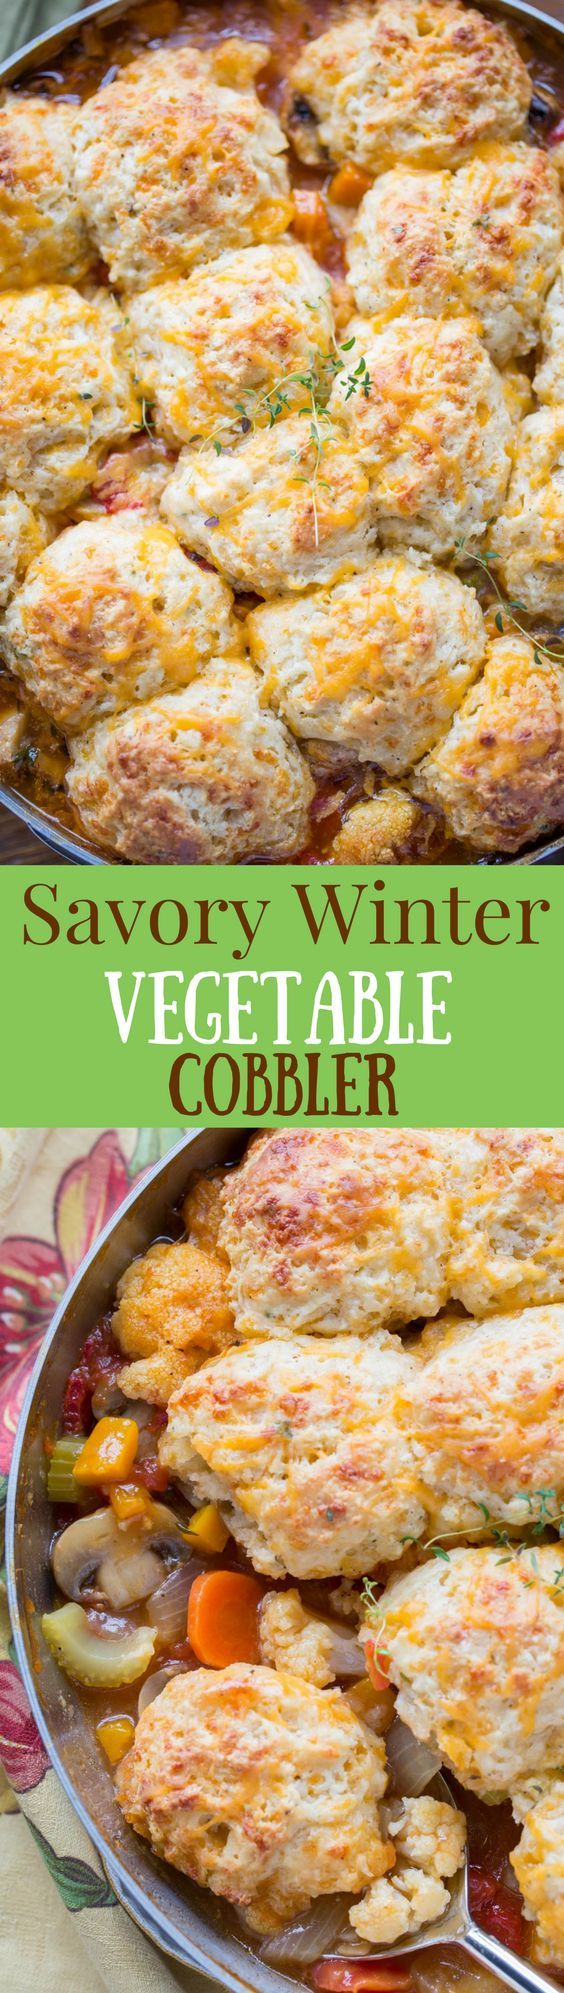 Savory Winter Vegetable Cobbler with Cheesy Herbed Biscuits ~ a delicious, filling, vegetable treat loaded with mushrooms, cauliflower, butternut squash, onions, carrots and celery. Topped with a soft cheesy biscuit to soak up all the juice! www.savingdessert.com